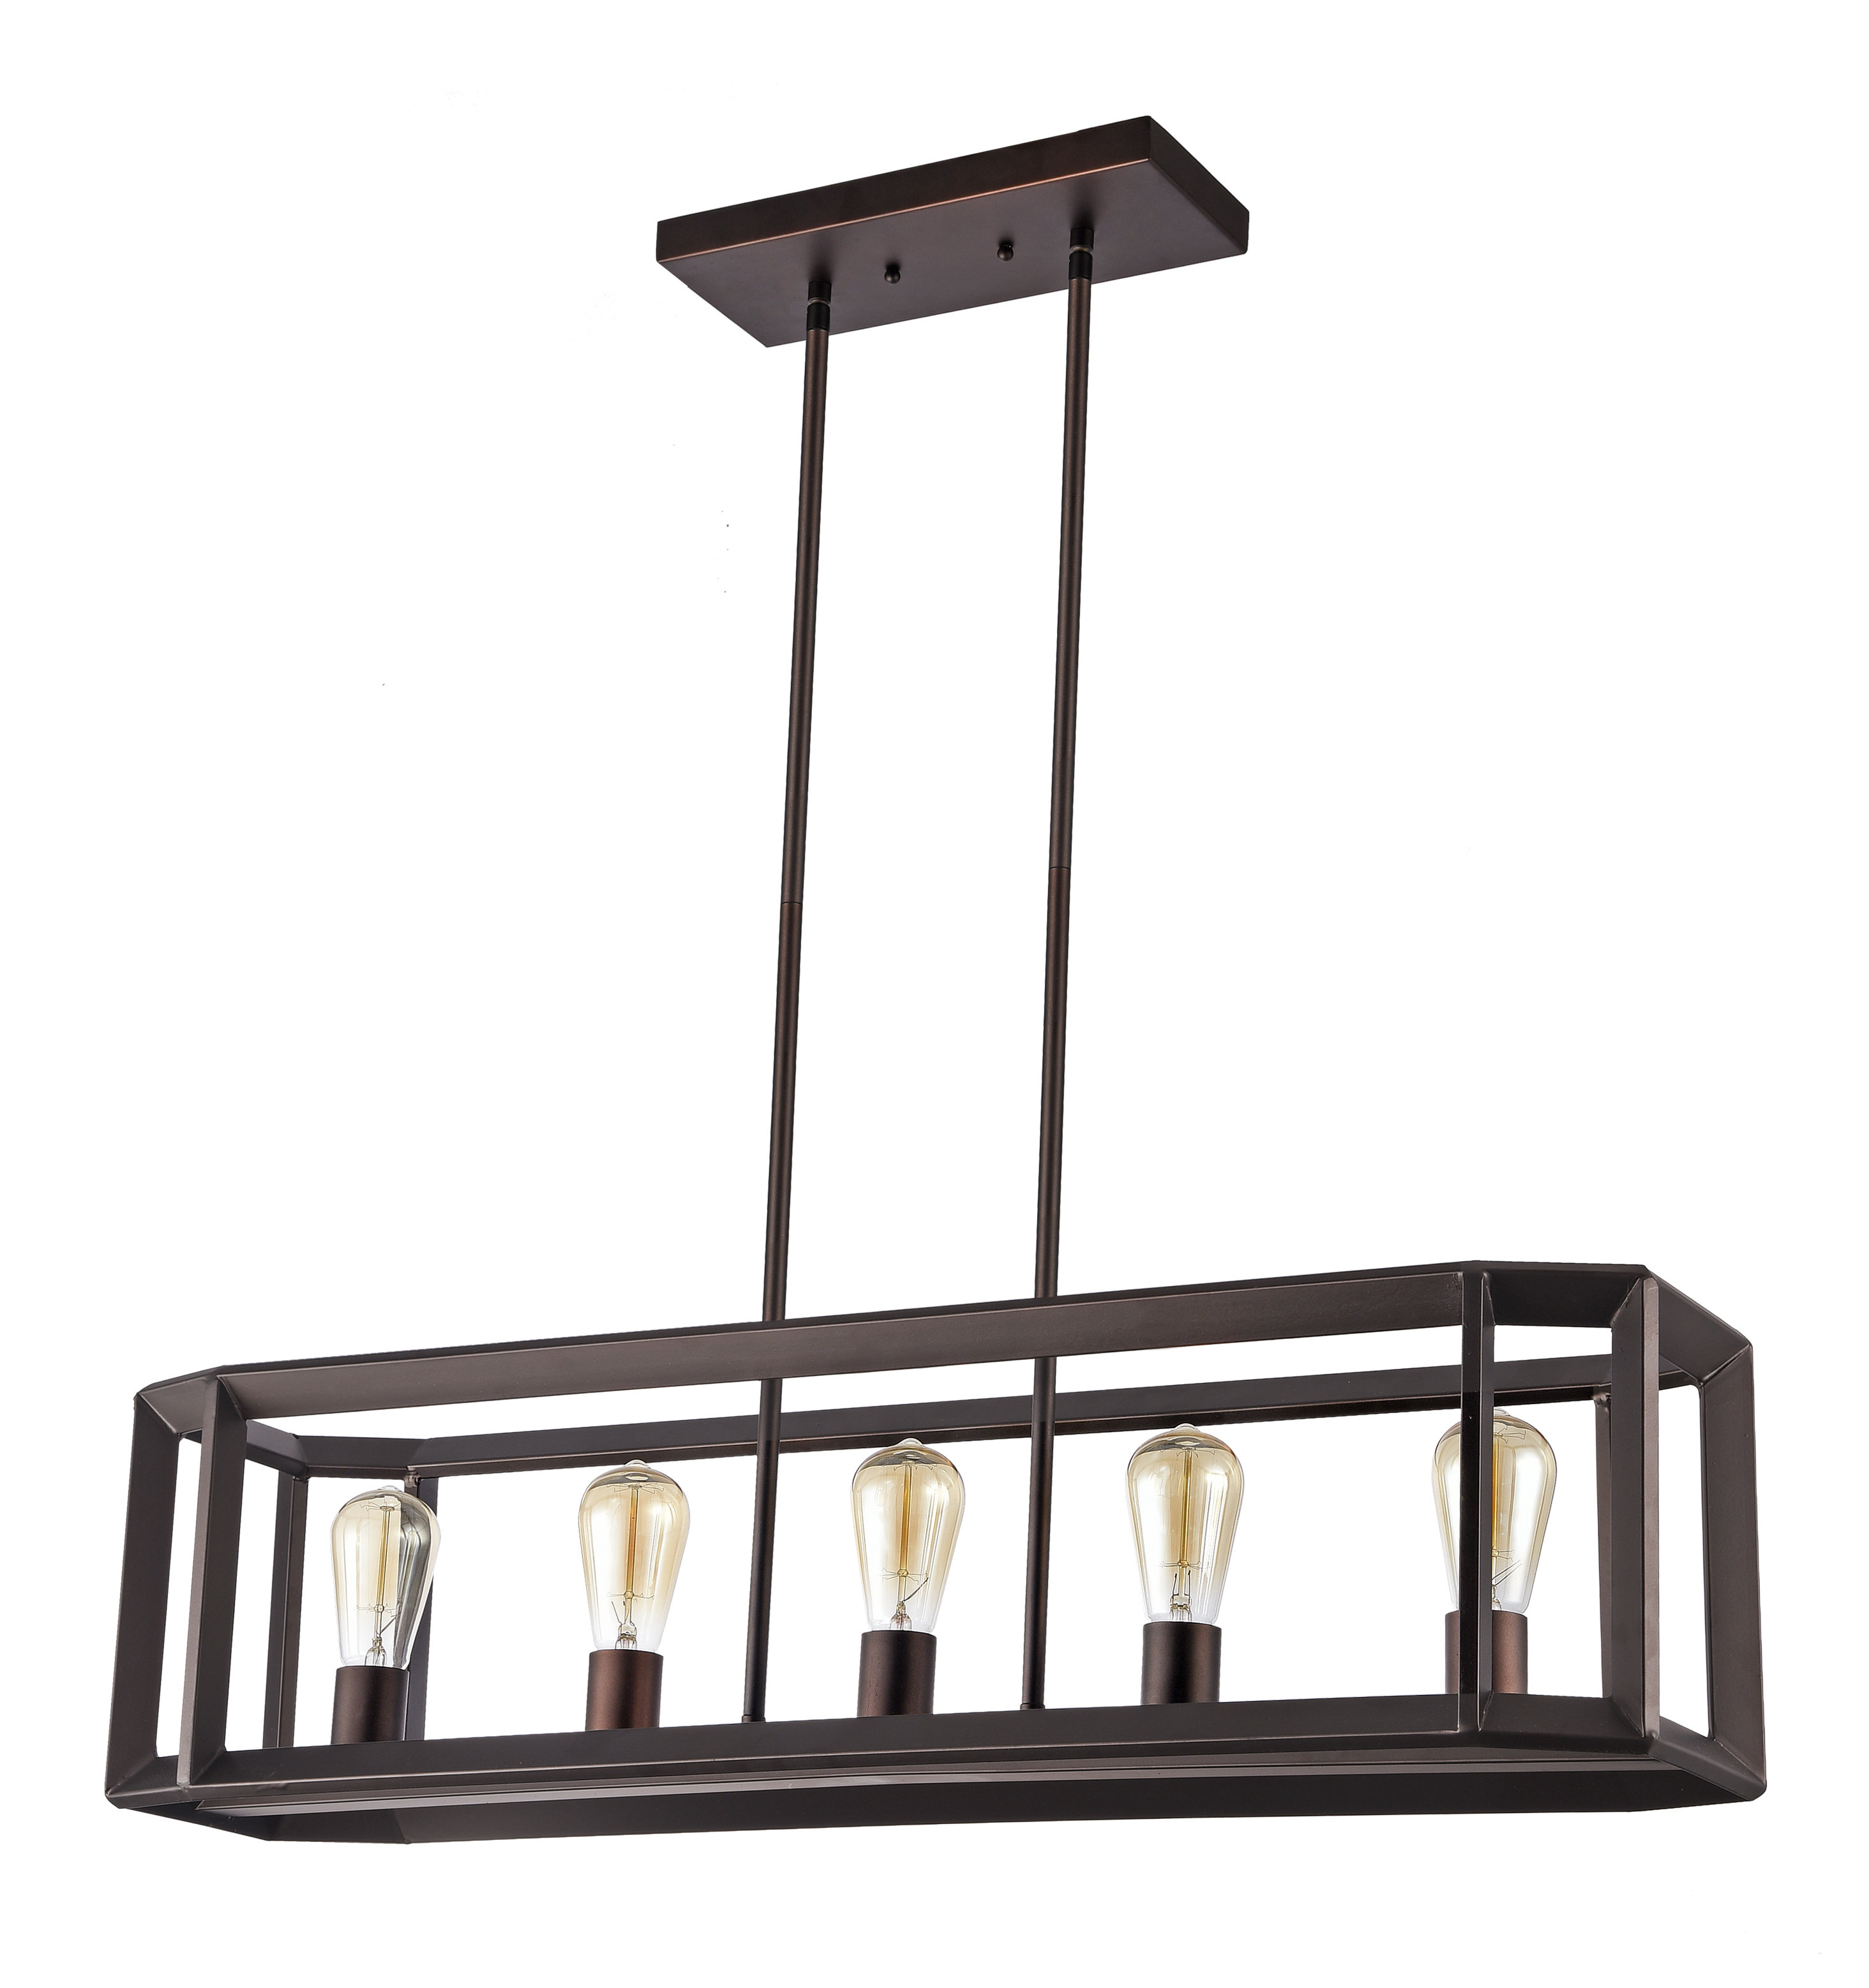 Best And Newest Bouvet 5 Light Kitchen Island Linear Pendant With Delon 5 Light Kitchen Island Linear Pendants (View 6 of 20)